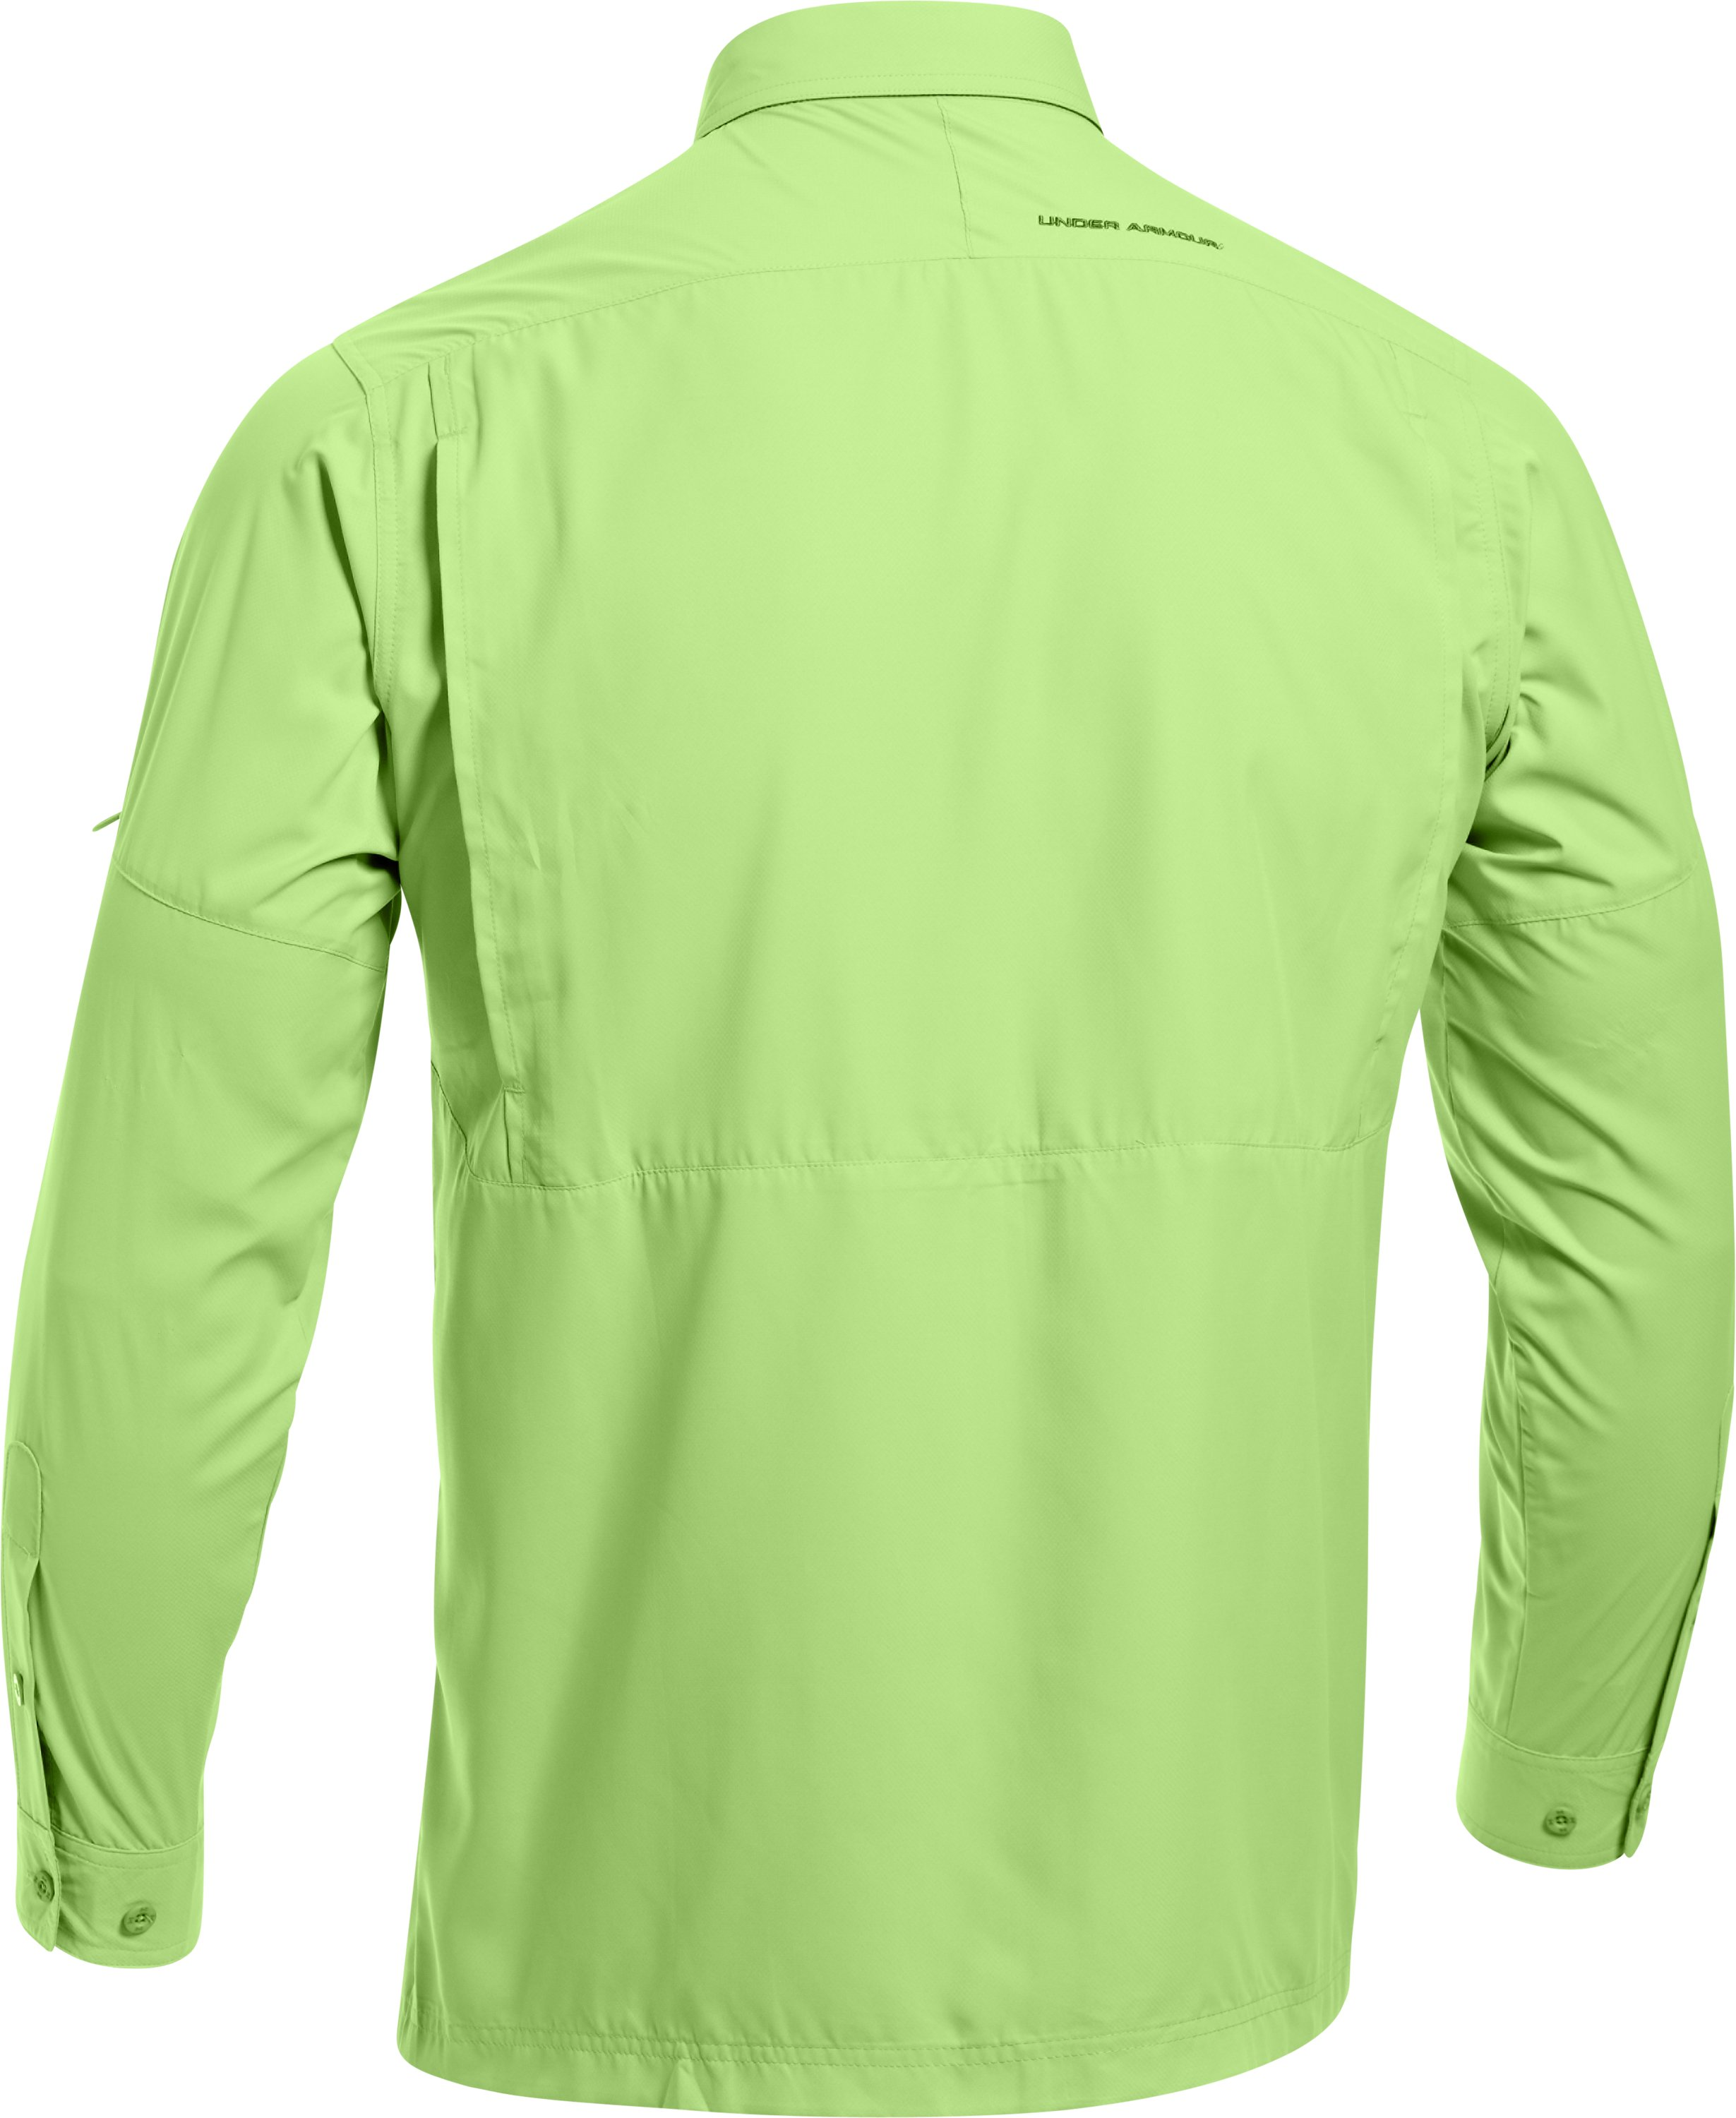 Men's Flats Guide Long Sleeve Shirt, Celery, undefined